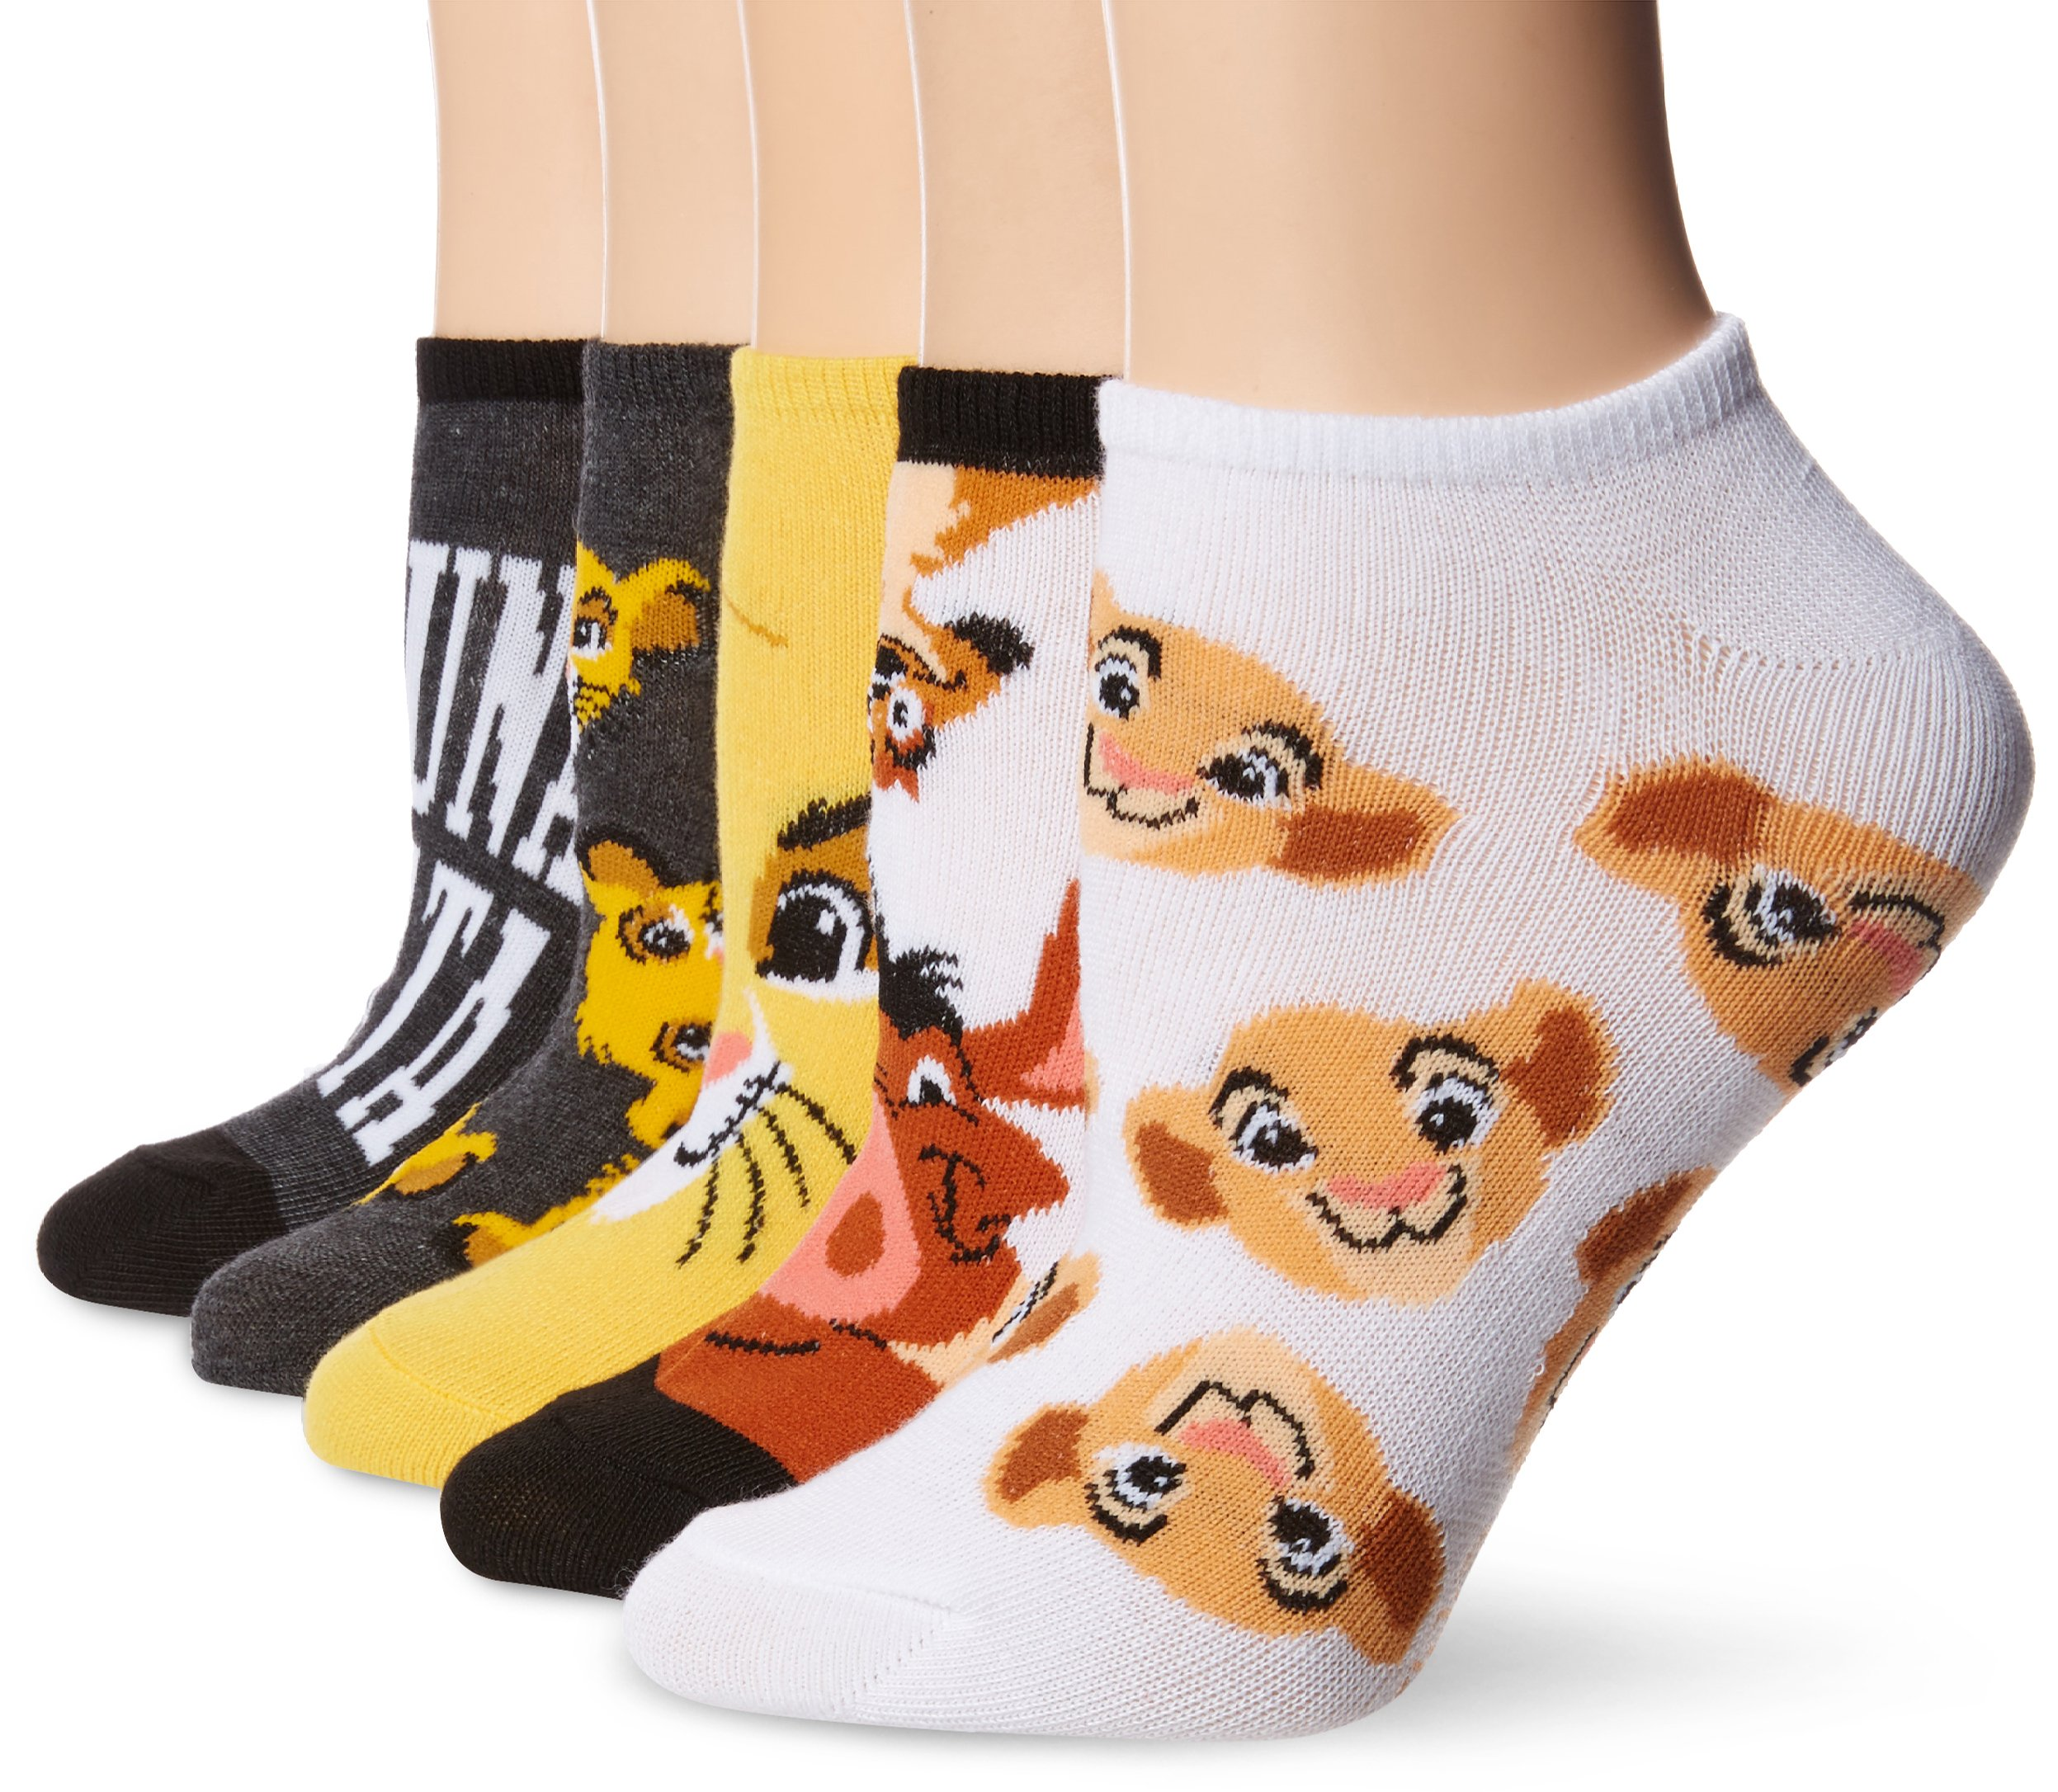 Disney Women's Lion King 5 Pack No Show Socks, Black Assorted, 9-11